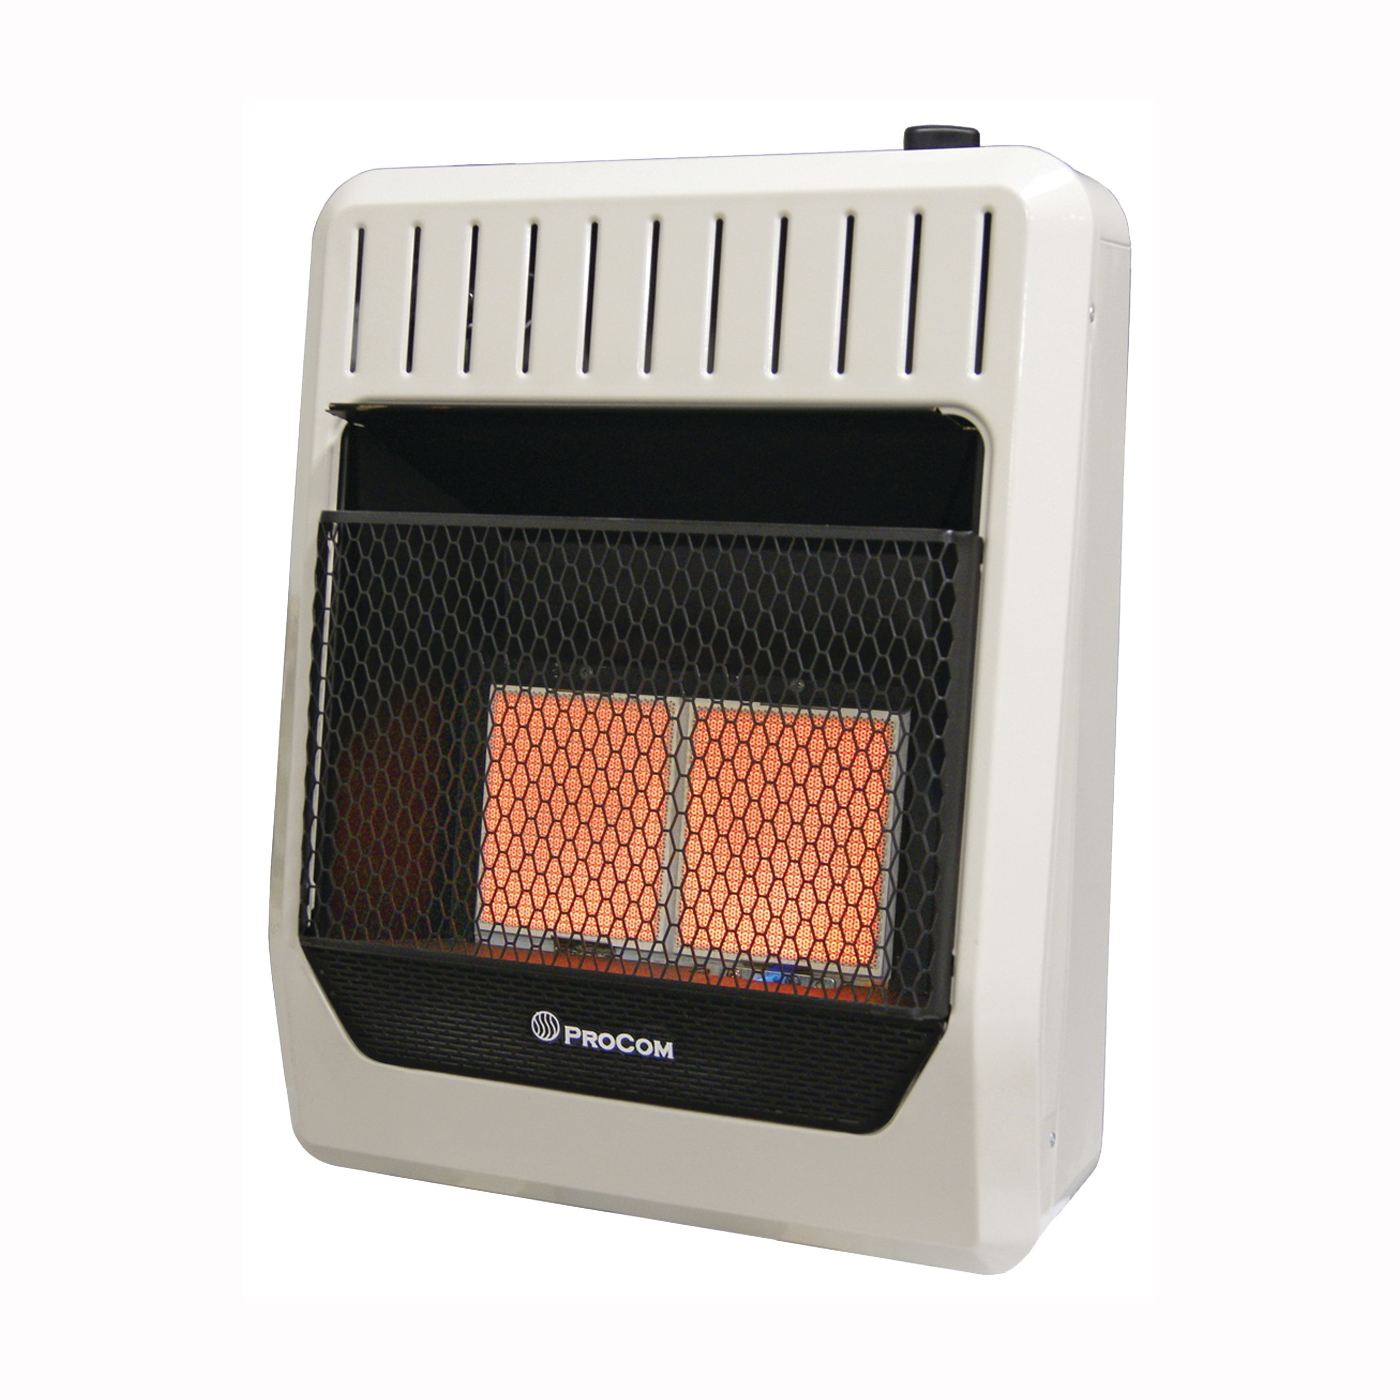 Picture of PROCOM HEATING MG2TIR Ventless Dual Fuel Heater, 18.46 in W, 24.1 in H, 18,000 to 20,000 Btu Heating